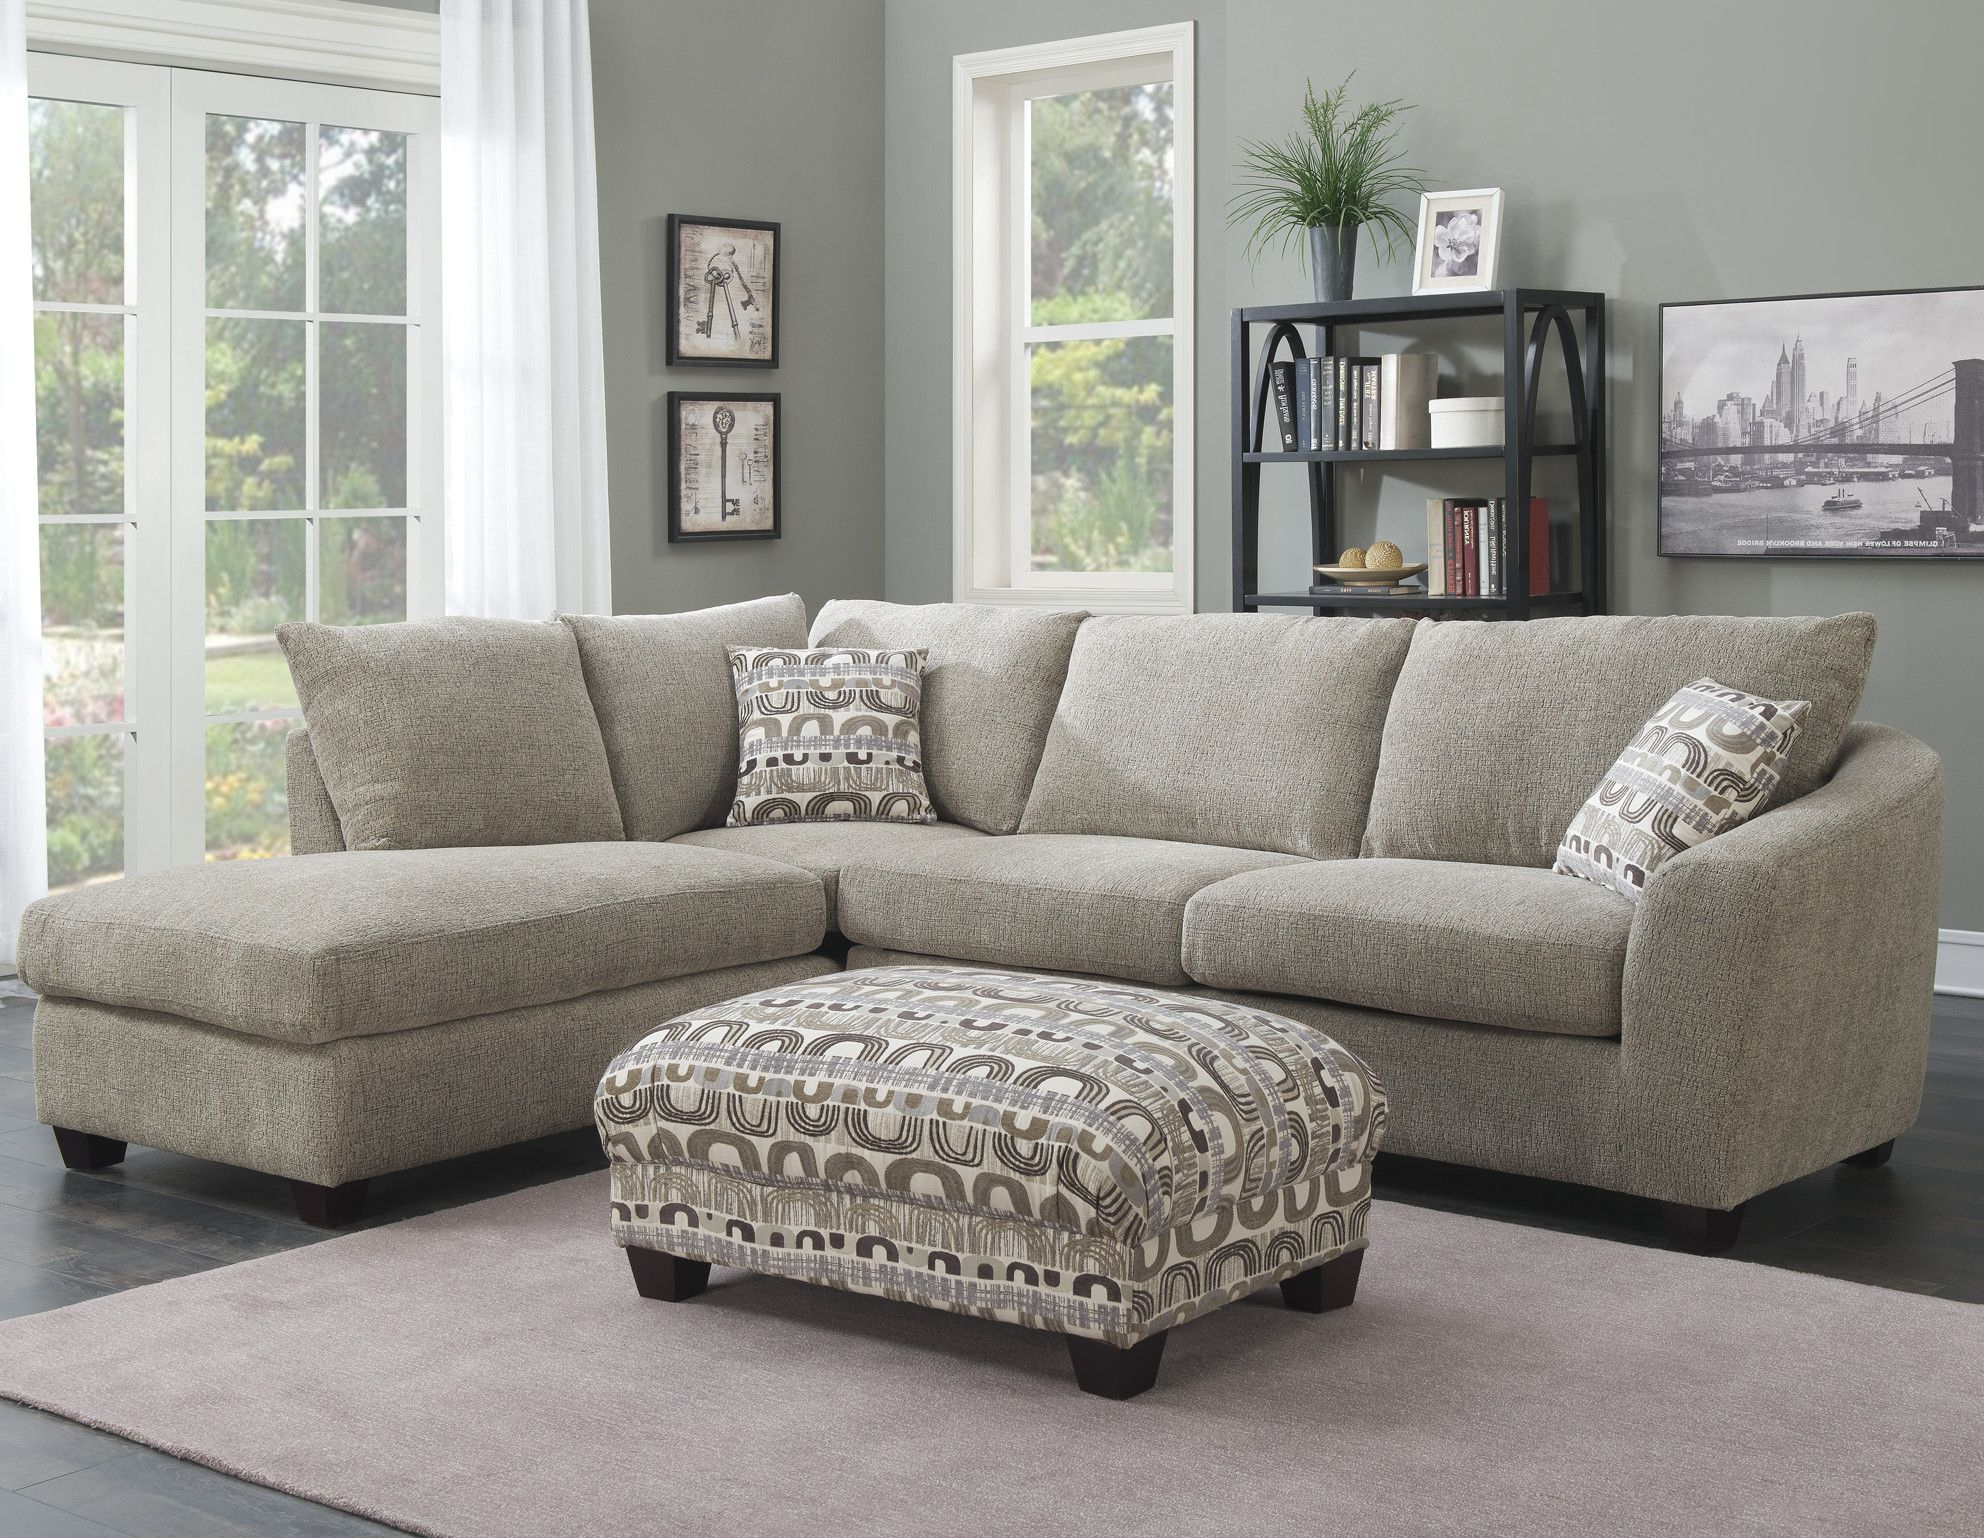 Most Recent Monet Right Facing Sectional Sofas With Regard To Pin On Living Room Ideas (View 13 of 20)